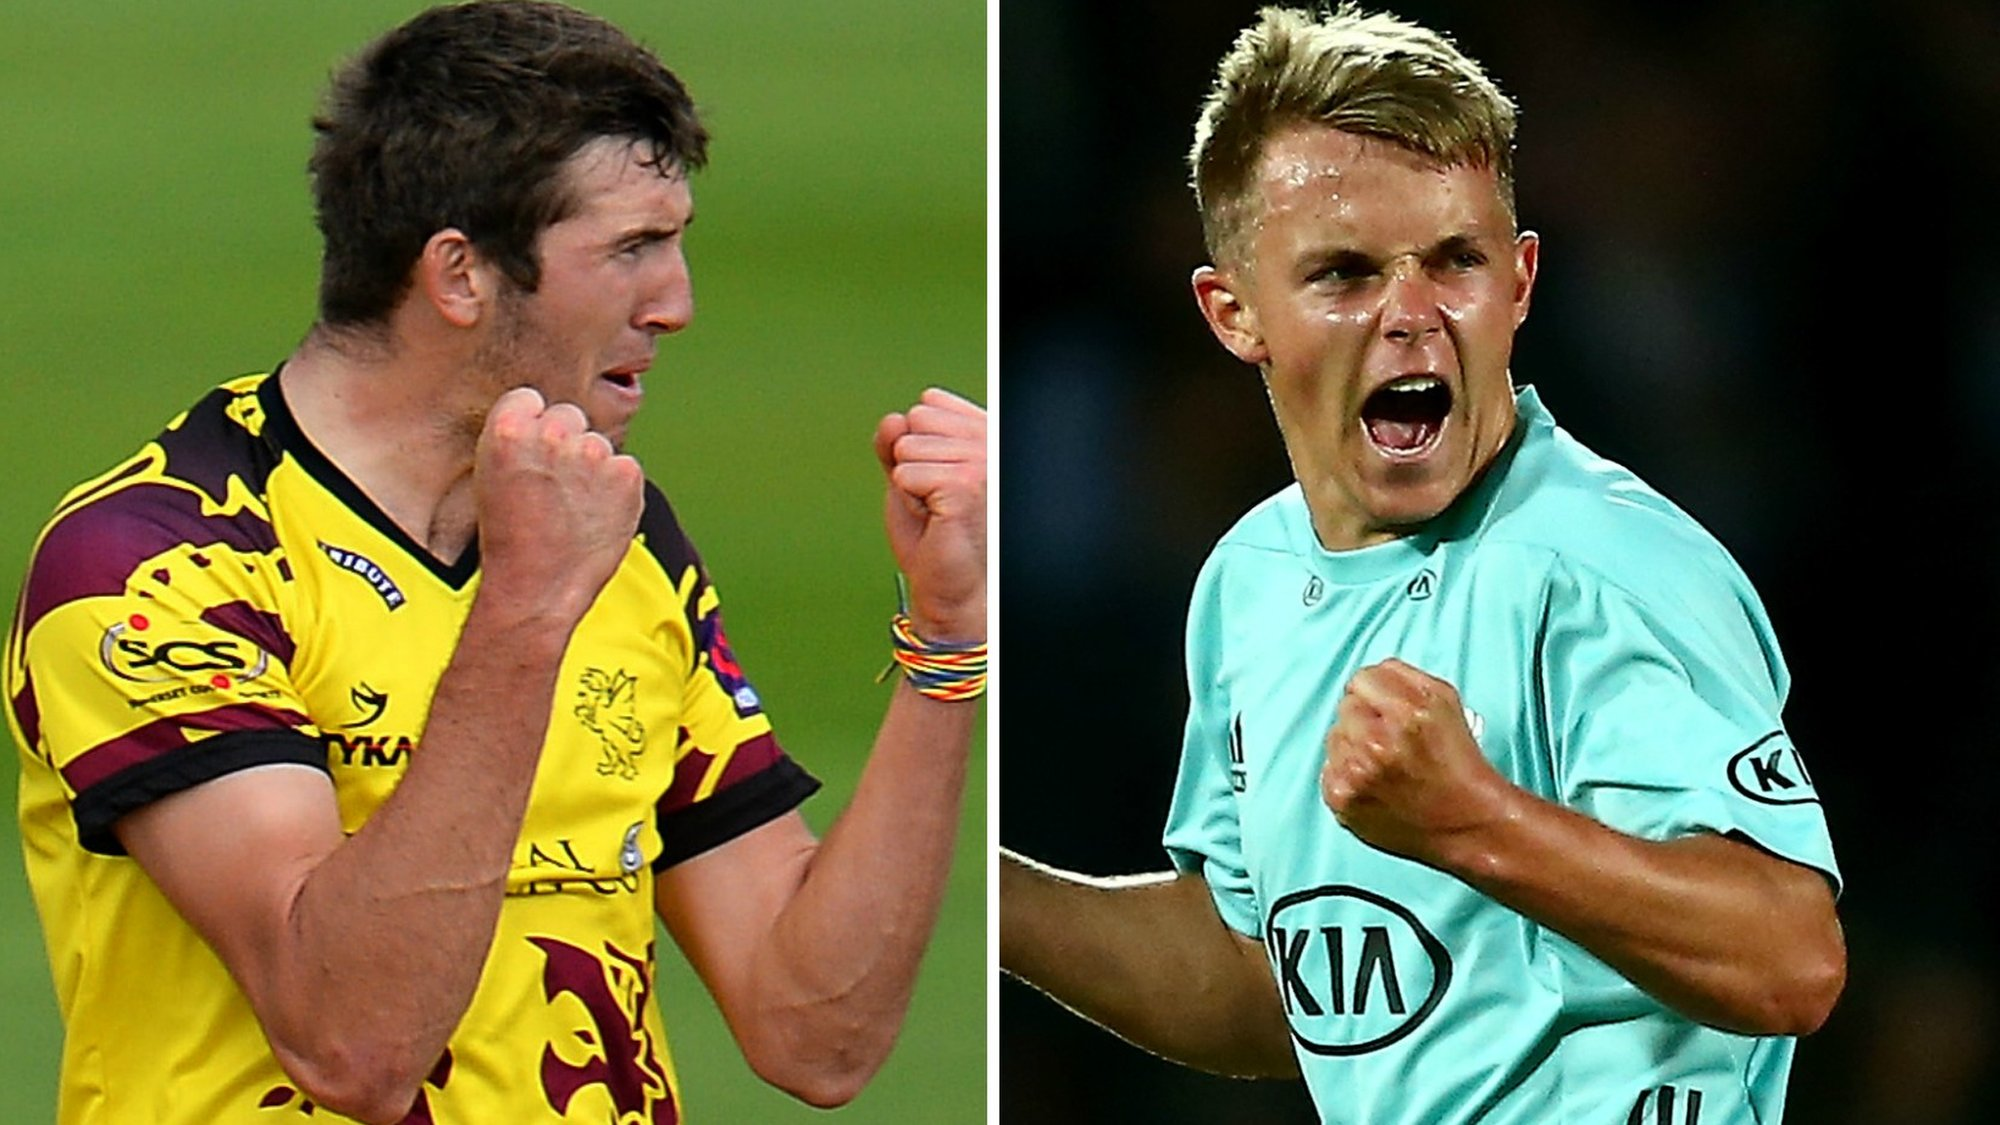 England v Australia: Hosts add Sam Curran and Craig Overton to ODI squad